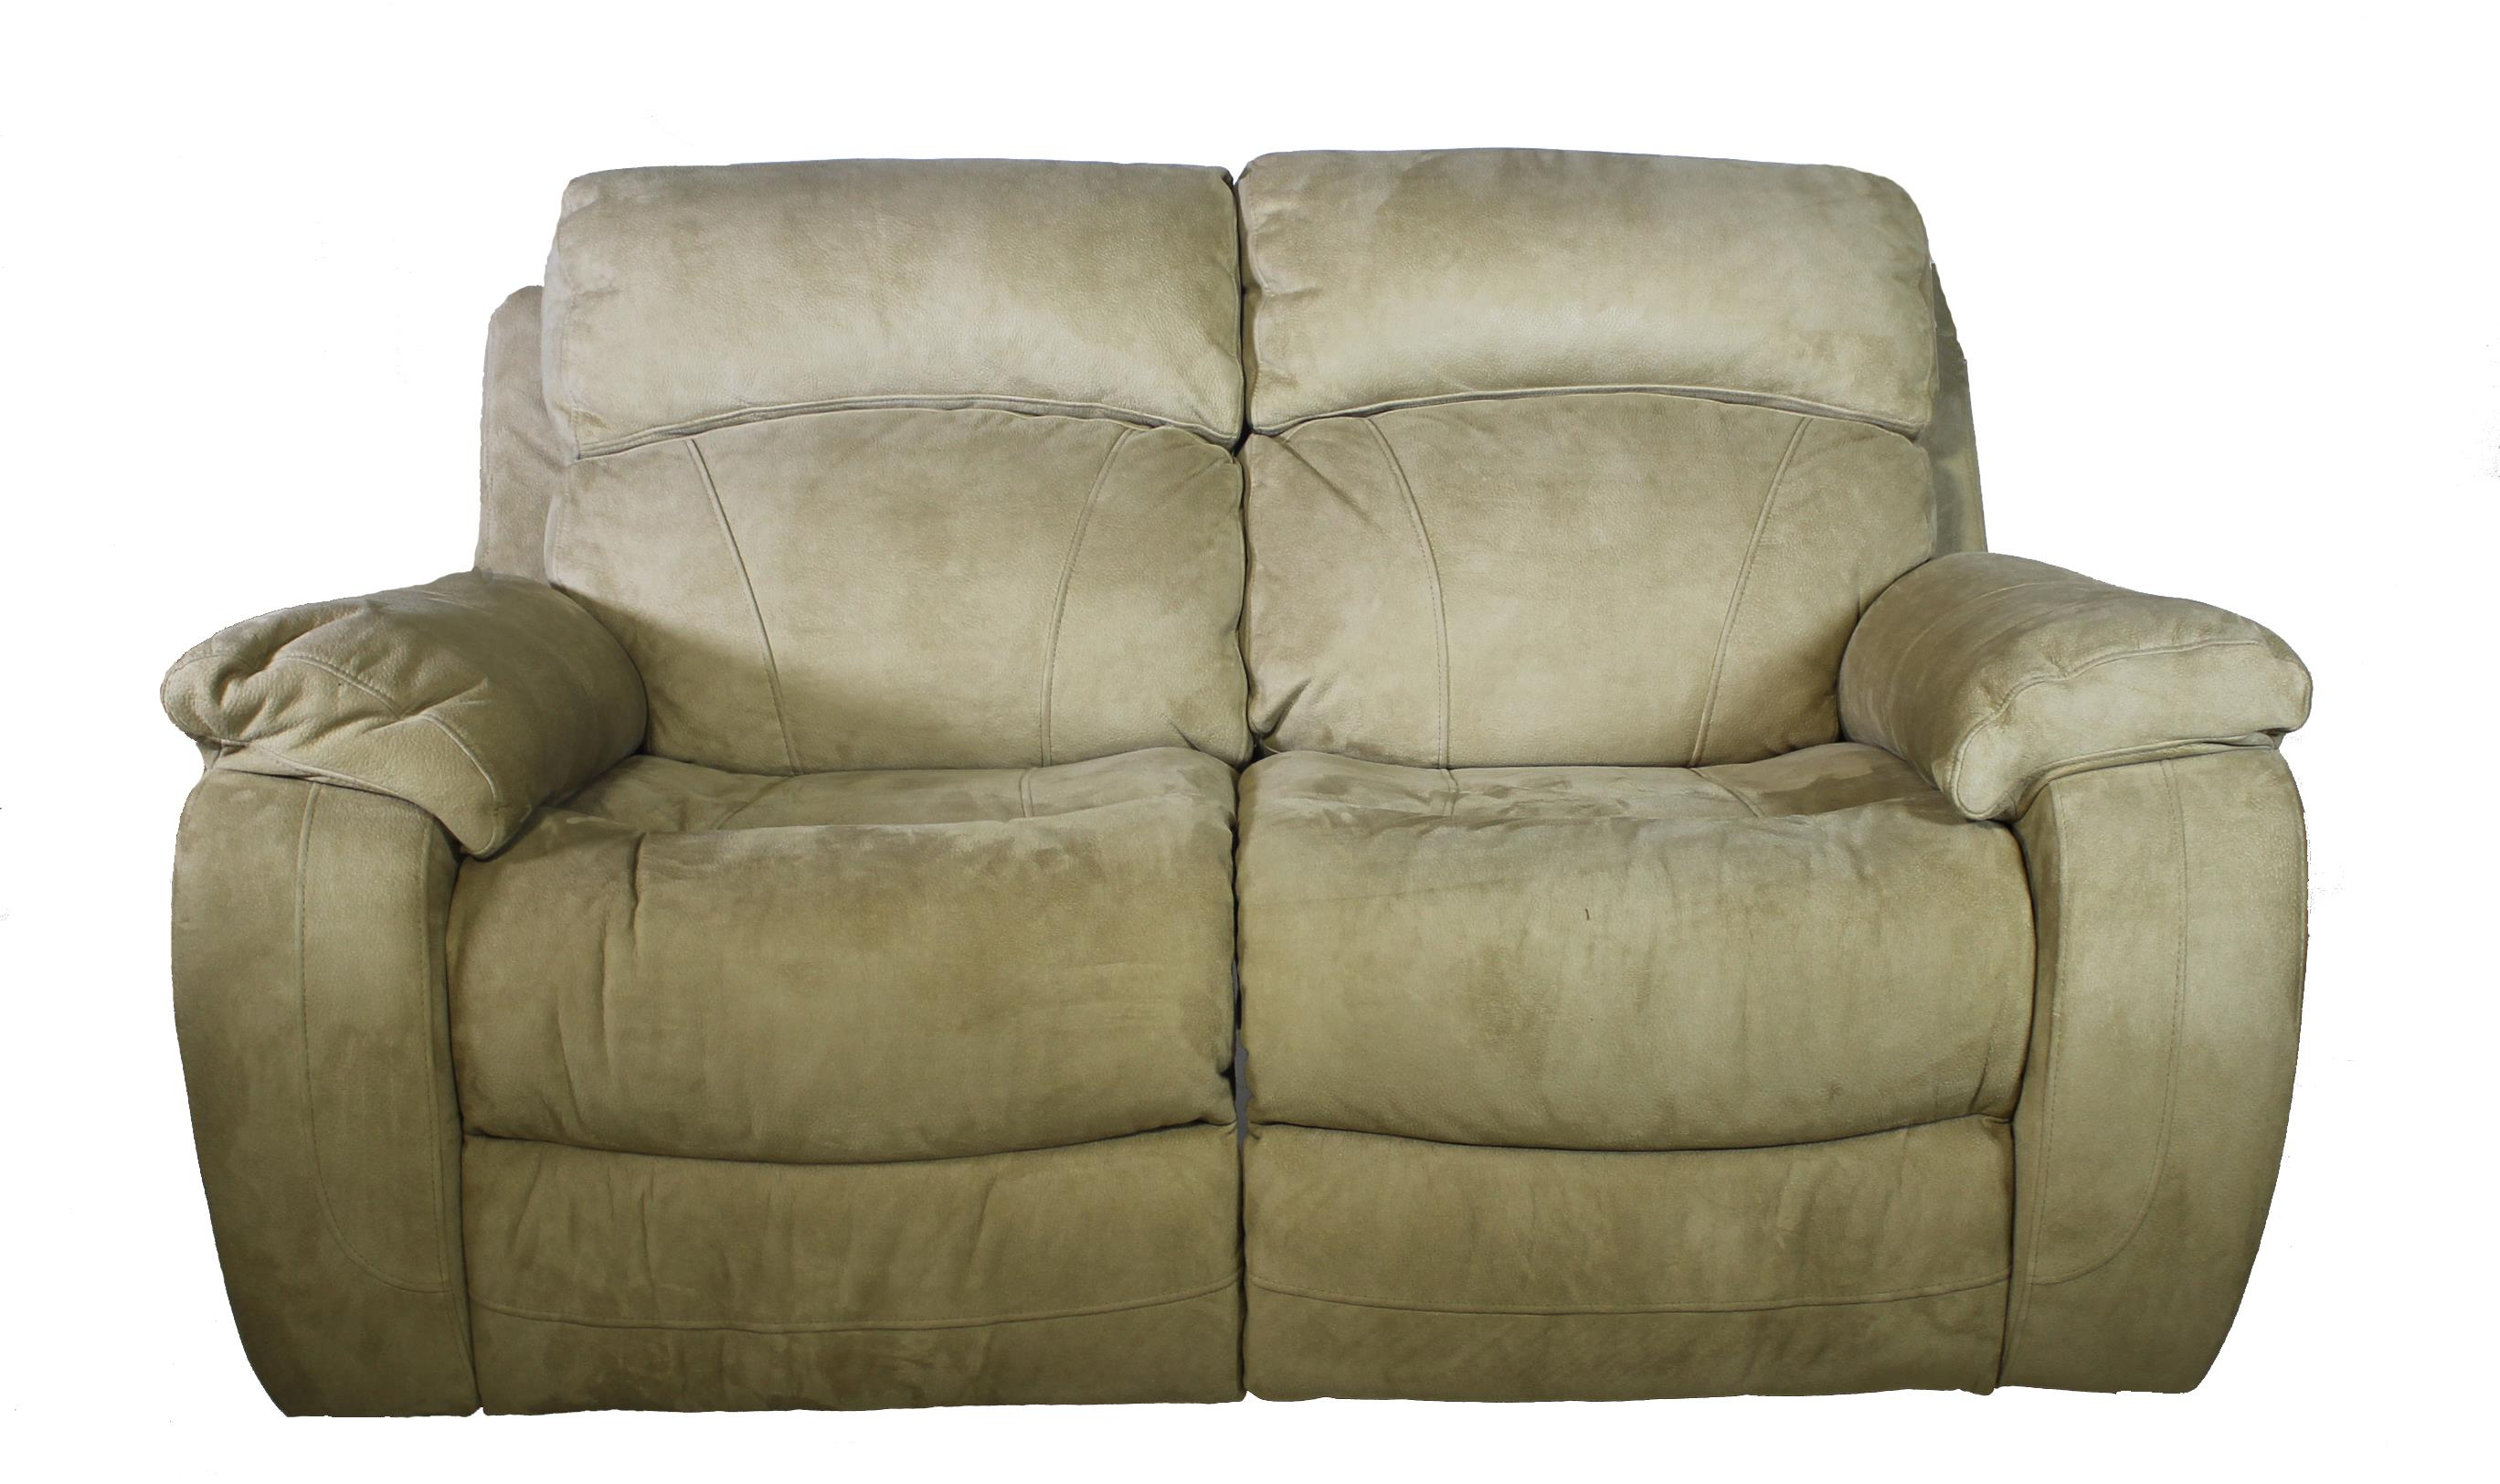 Cheers Sofa Cheers Reclining Sofas Dual Reclining Loveseat - Item Number: UW8812-L2-2M